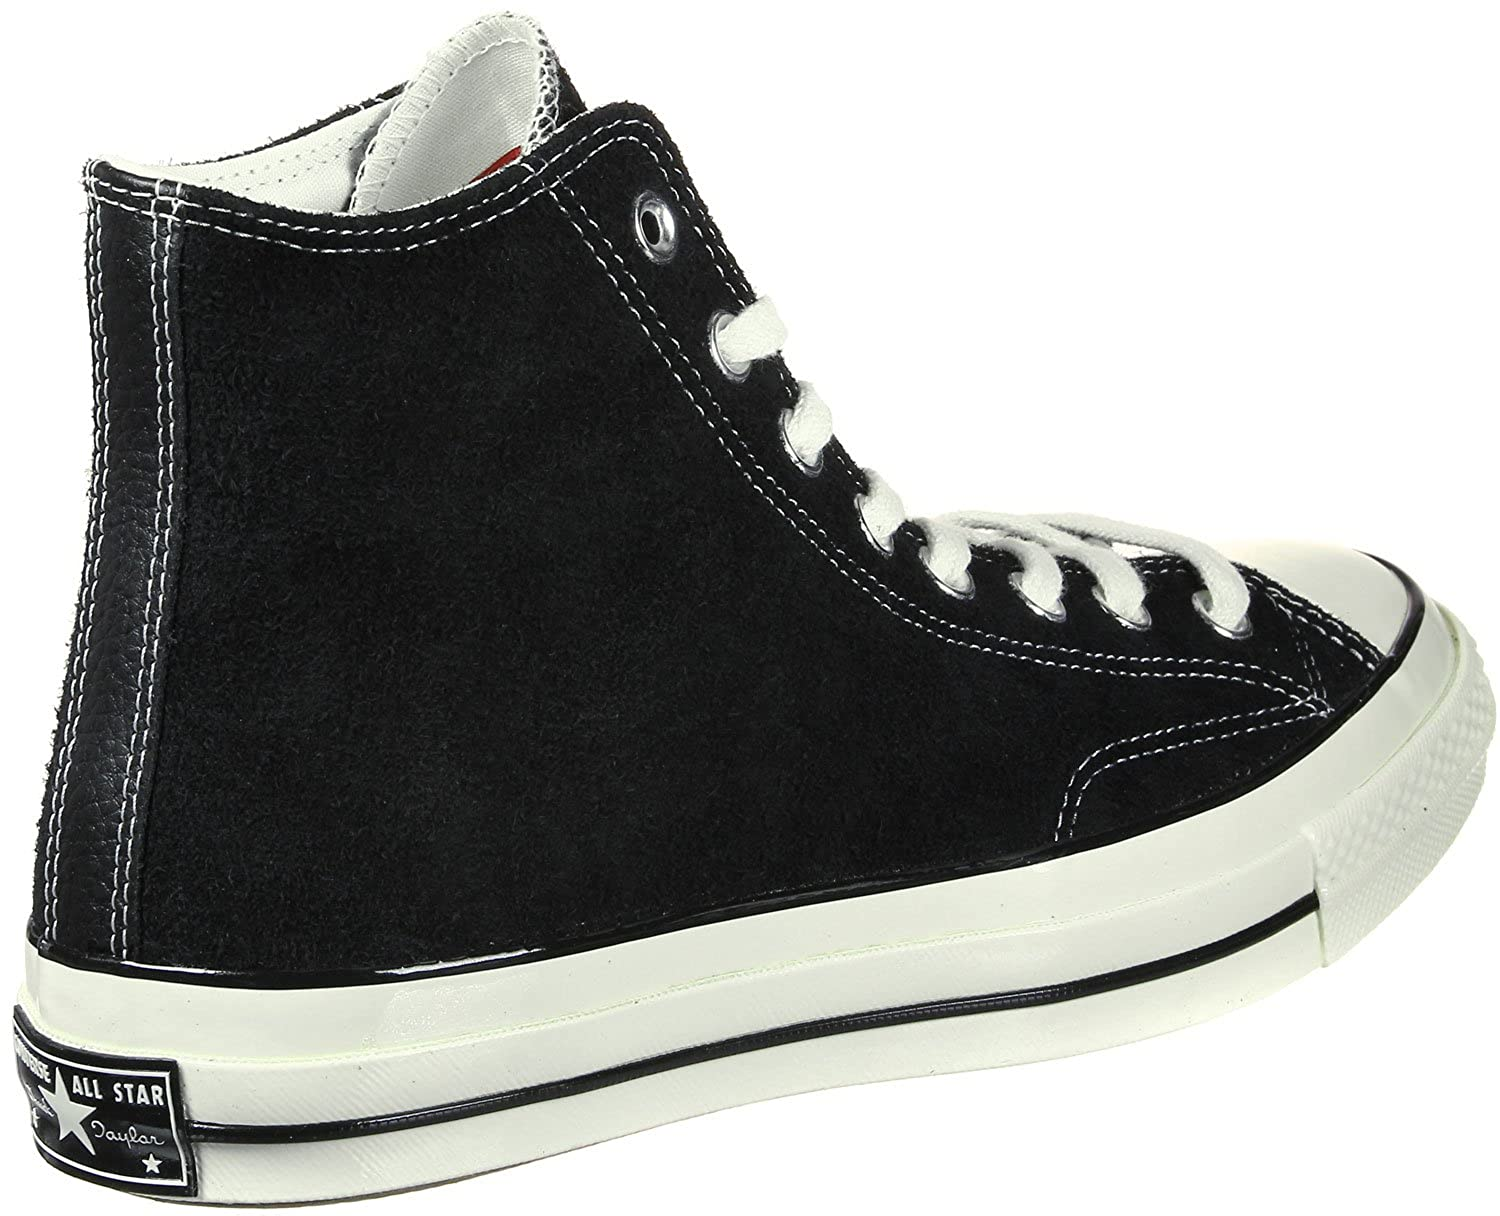 dd5da3b912ffb5 Converse All Star 70 Hi Shoes Black egret  Amazon.co.uk  Shoes   Bags